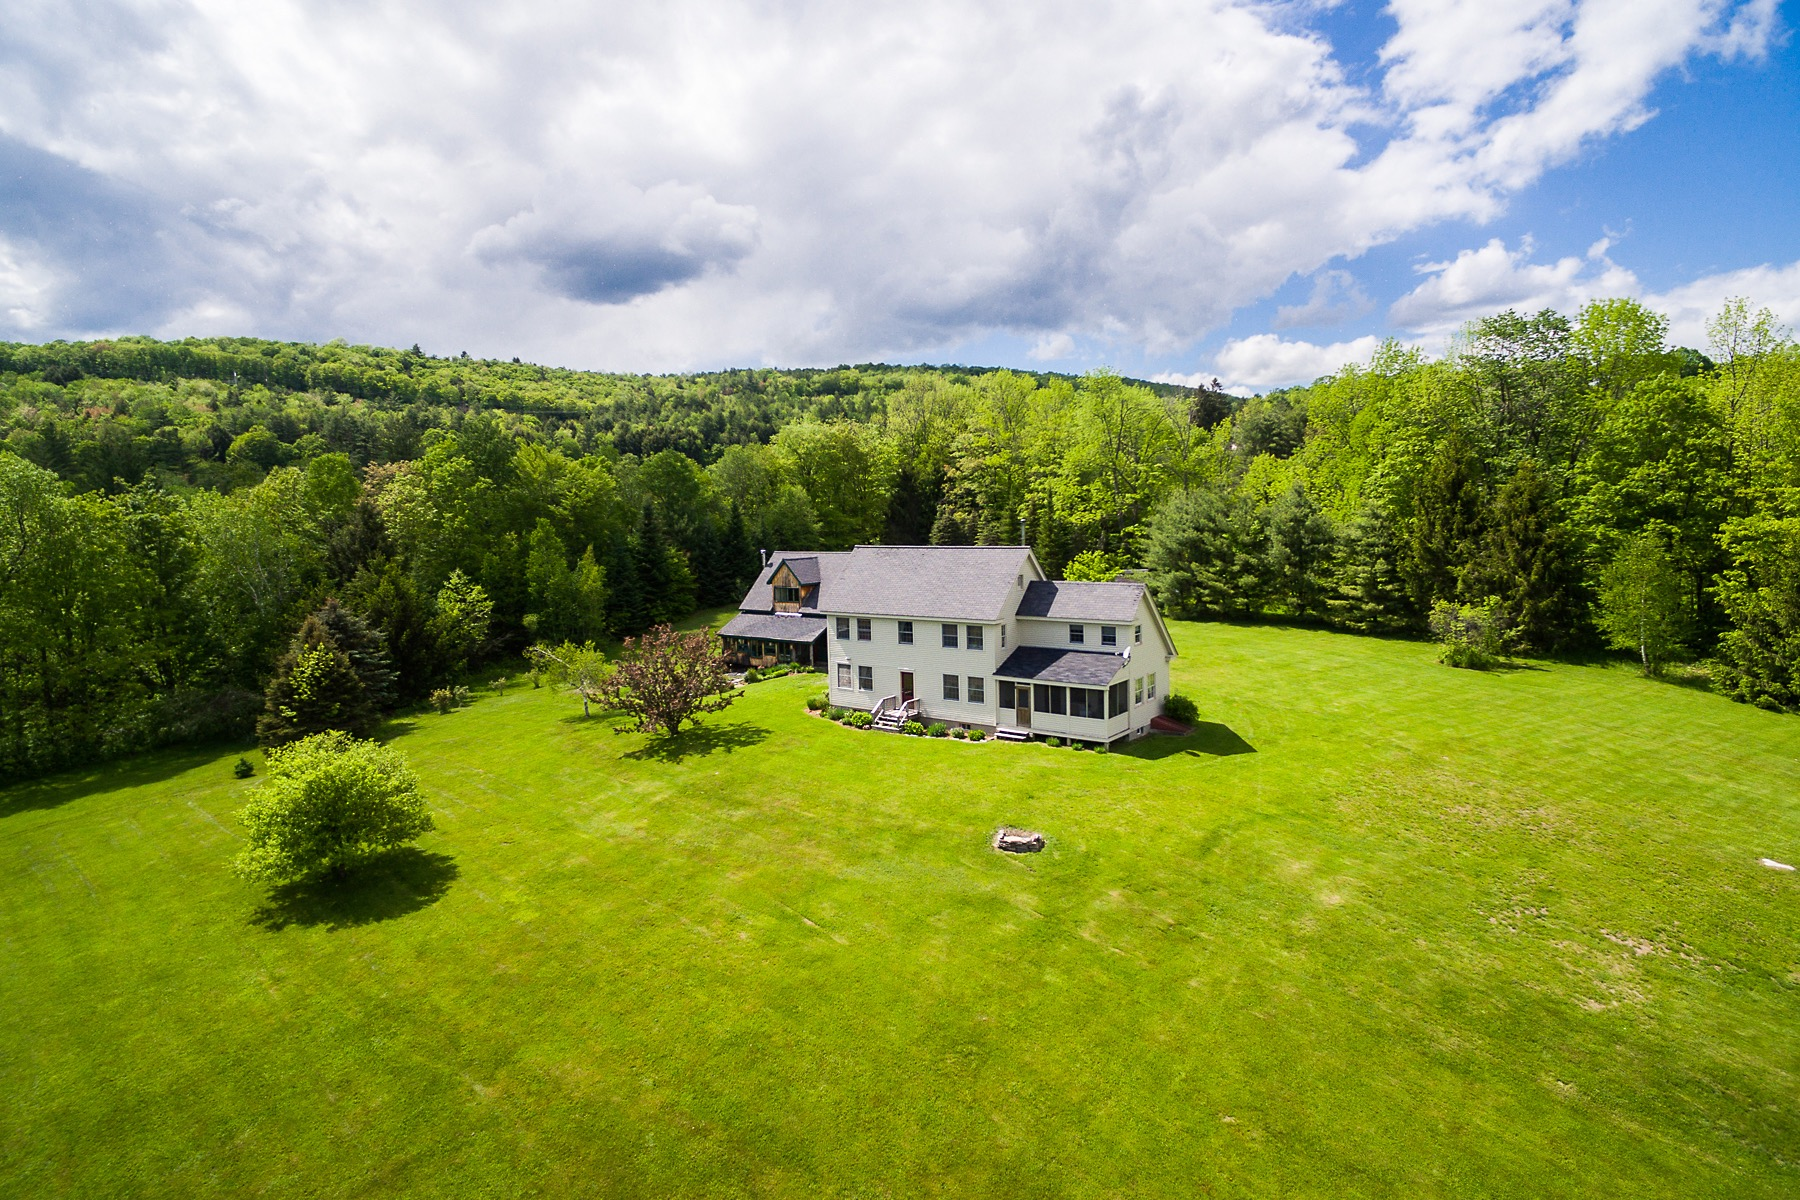 Single Family Home for Sale at Vermont Homestead in Pastoral Setting 350 Farrar Rd Chester, Vermont 05143 United States